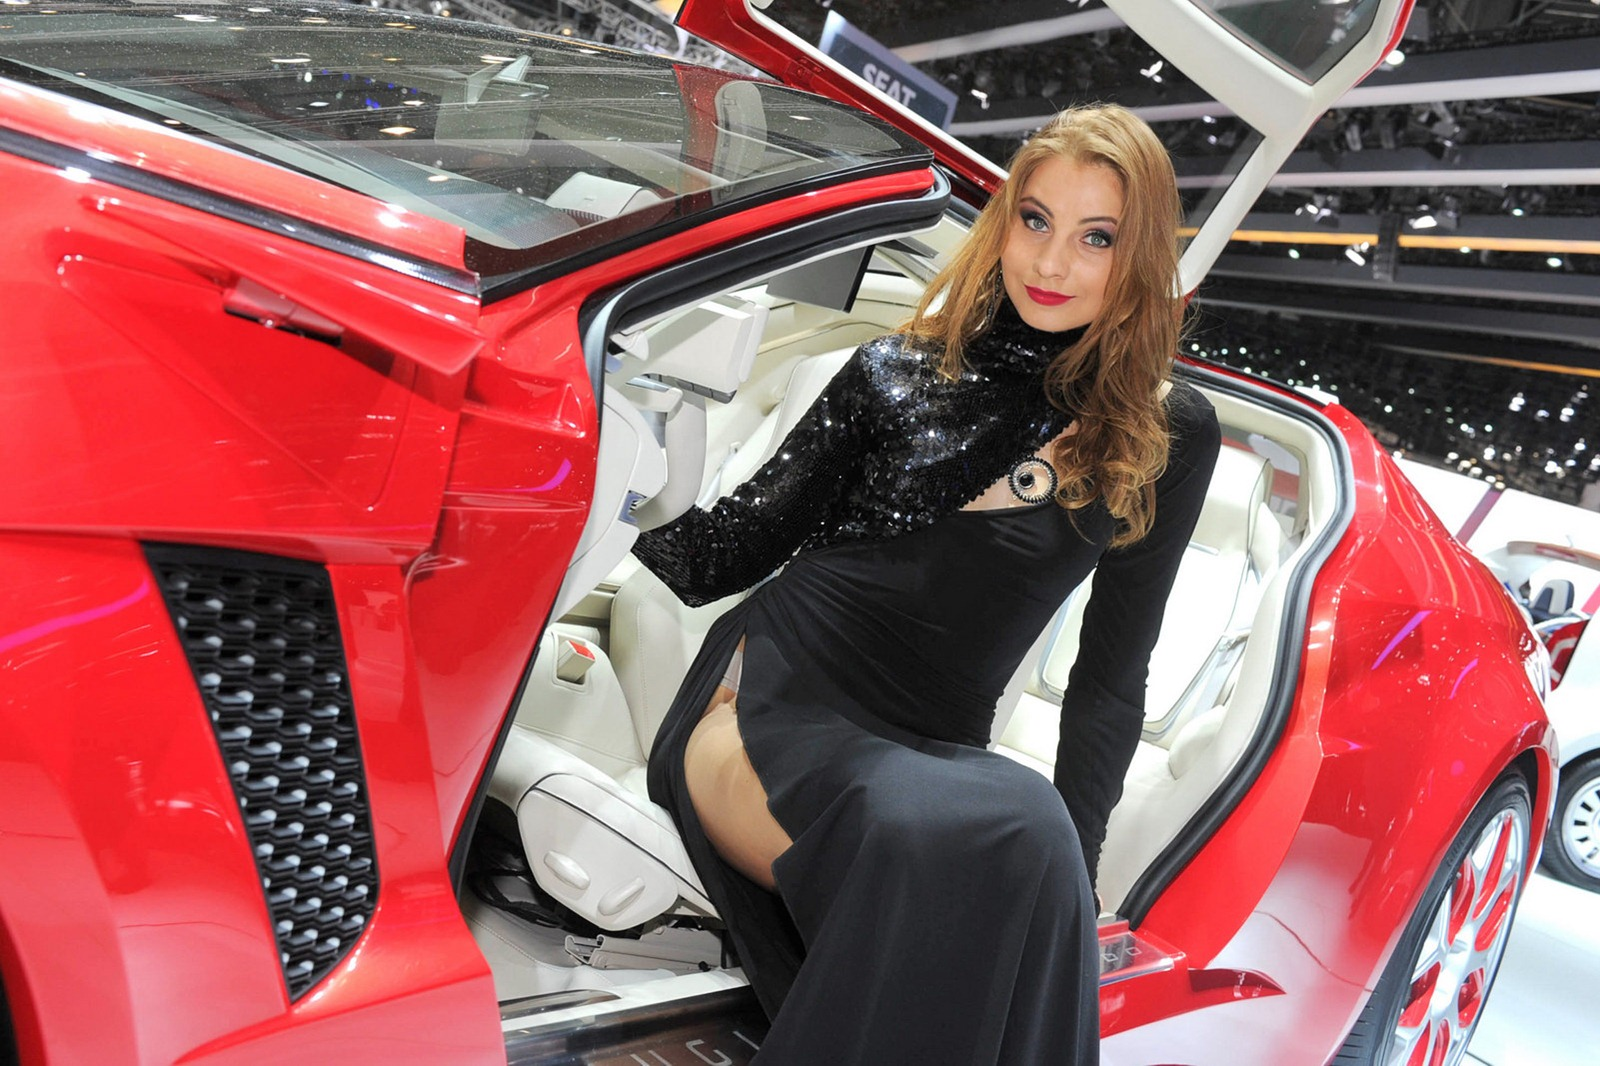 2012 geneva motor show archives - autotribute